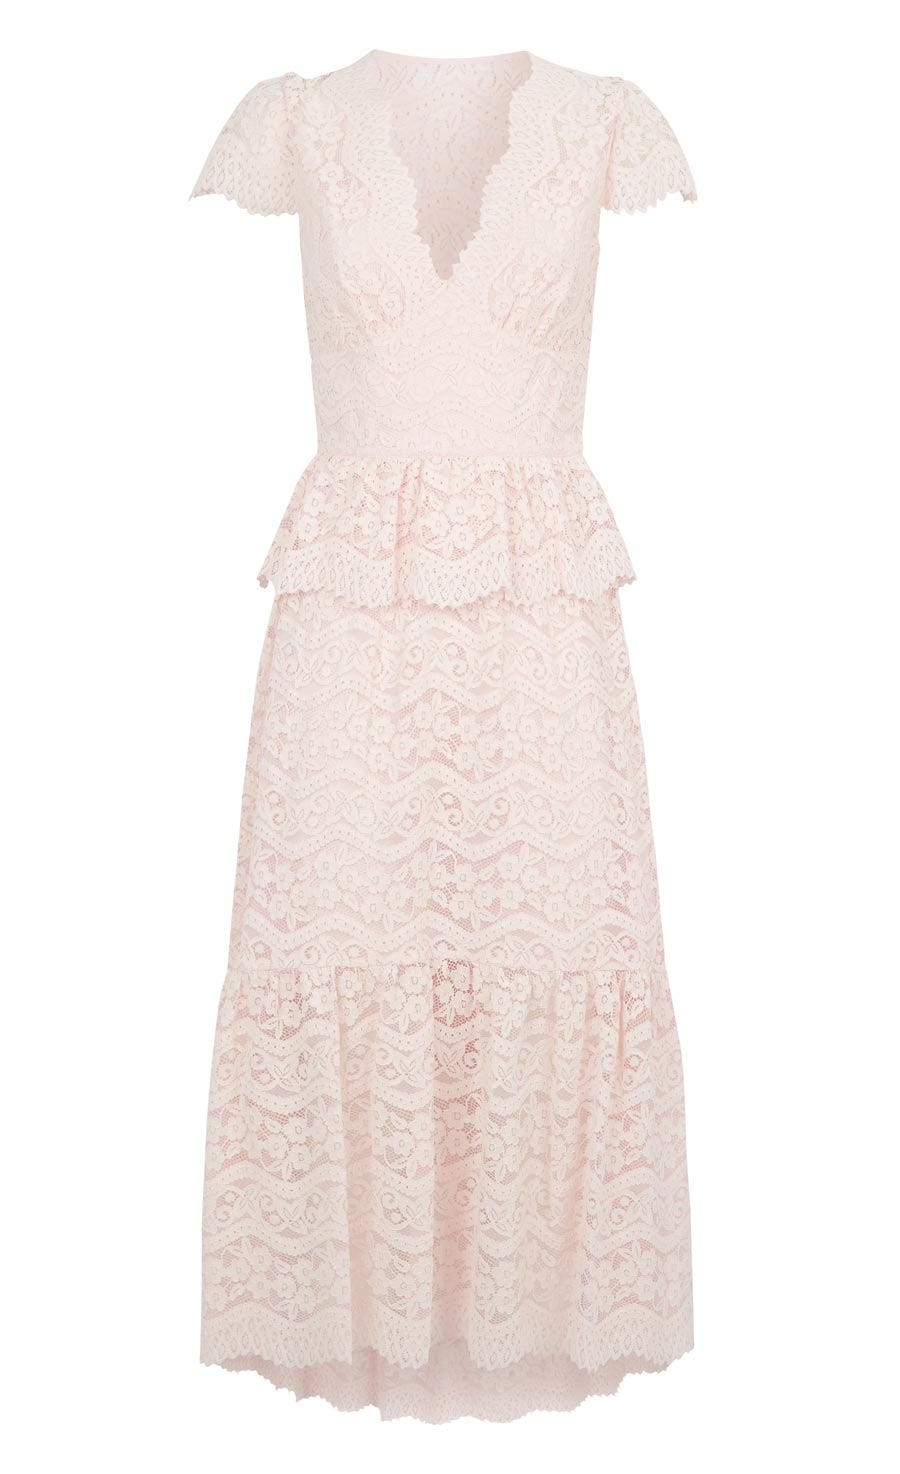 Lunar Lace V Neck Dress, Shell